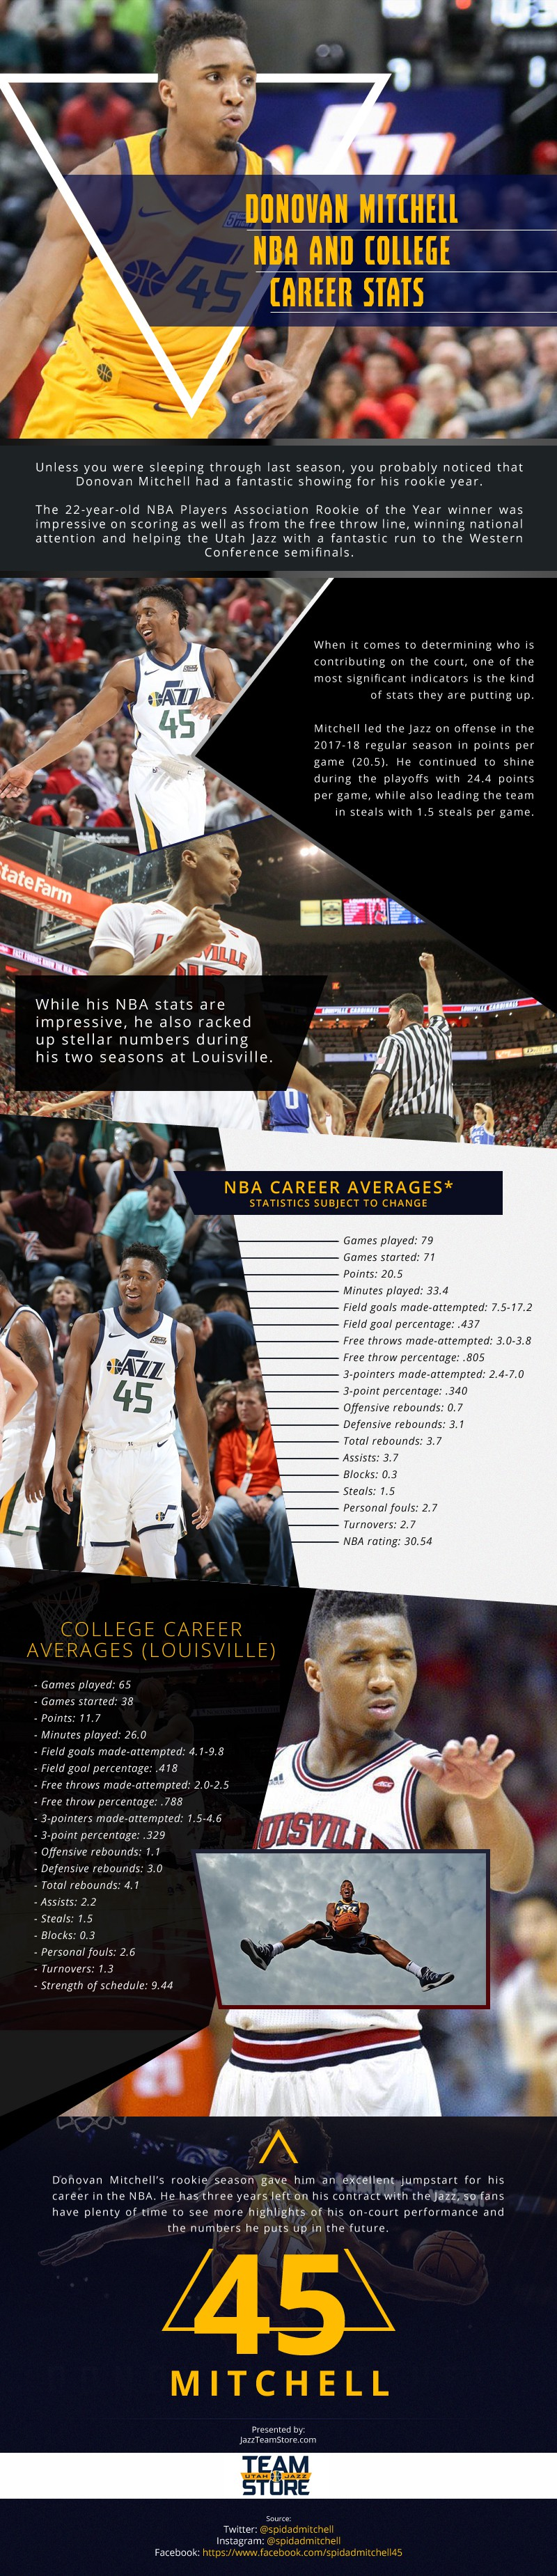 Donovan Mitchell NBA and College Career Stats infographic